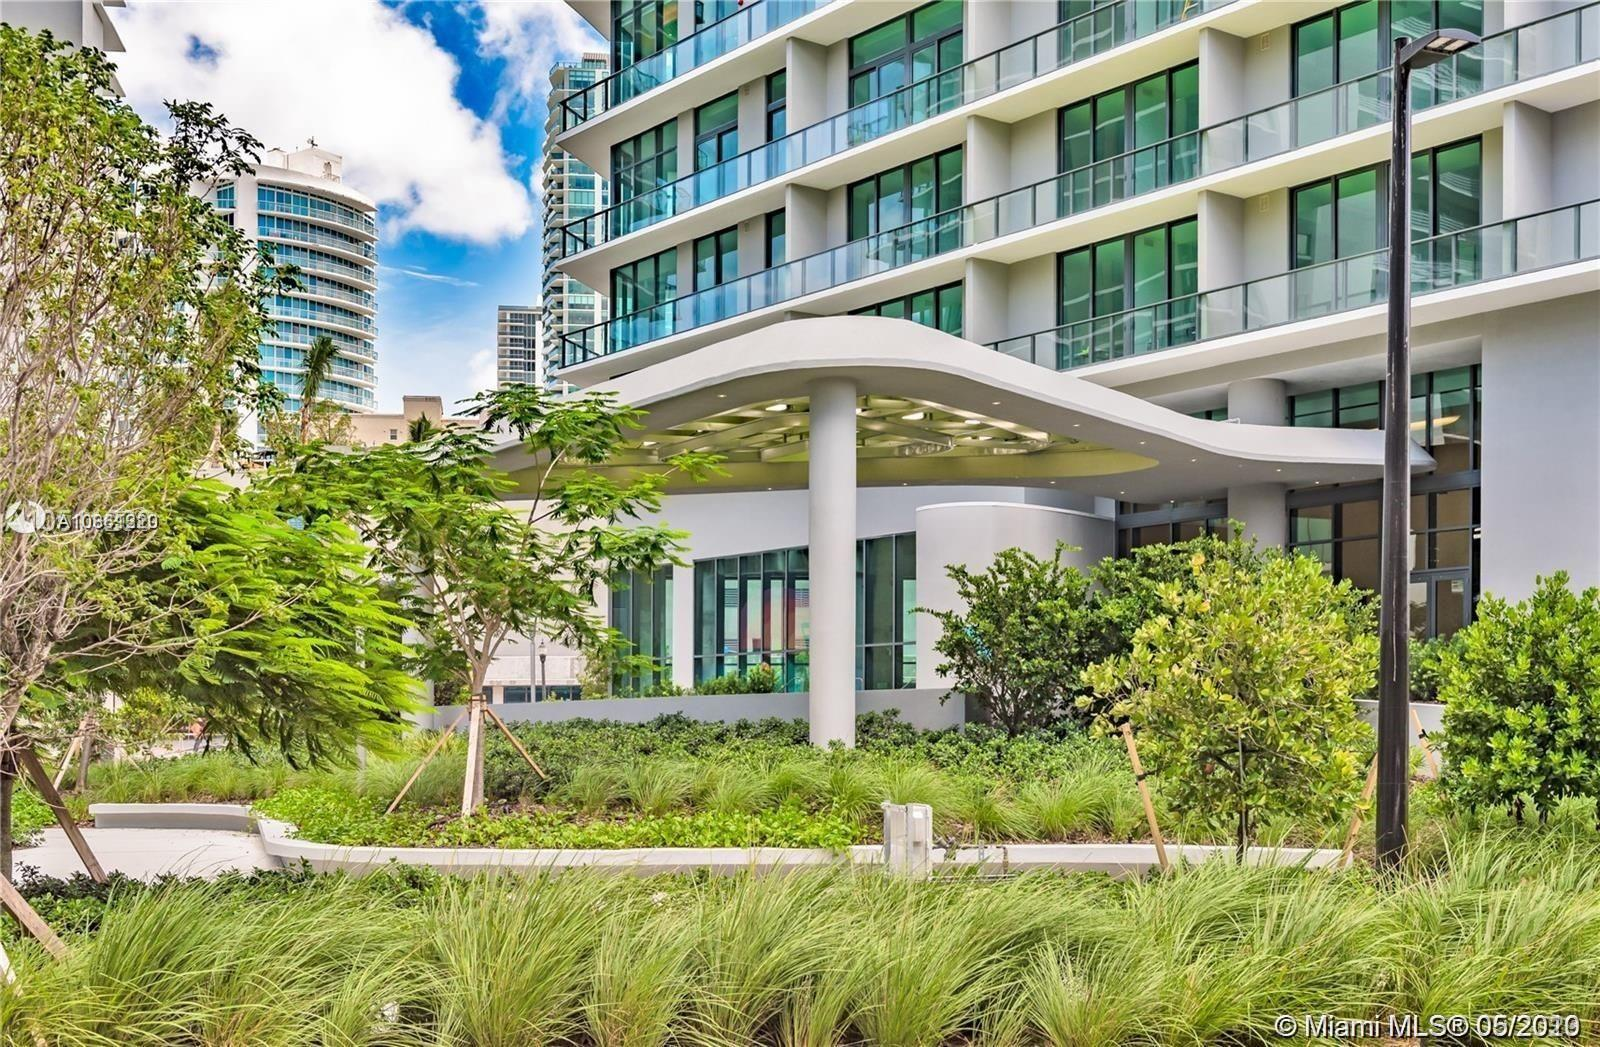 BRAND NEW APARTMENT WITH DIRECT OCEAN VIEWS! walk-in closets, open kitchen with top of the line BOSC